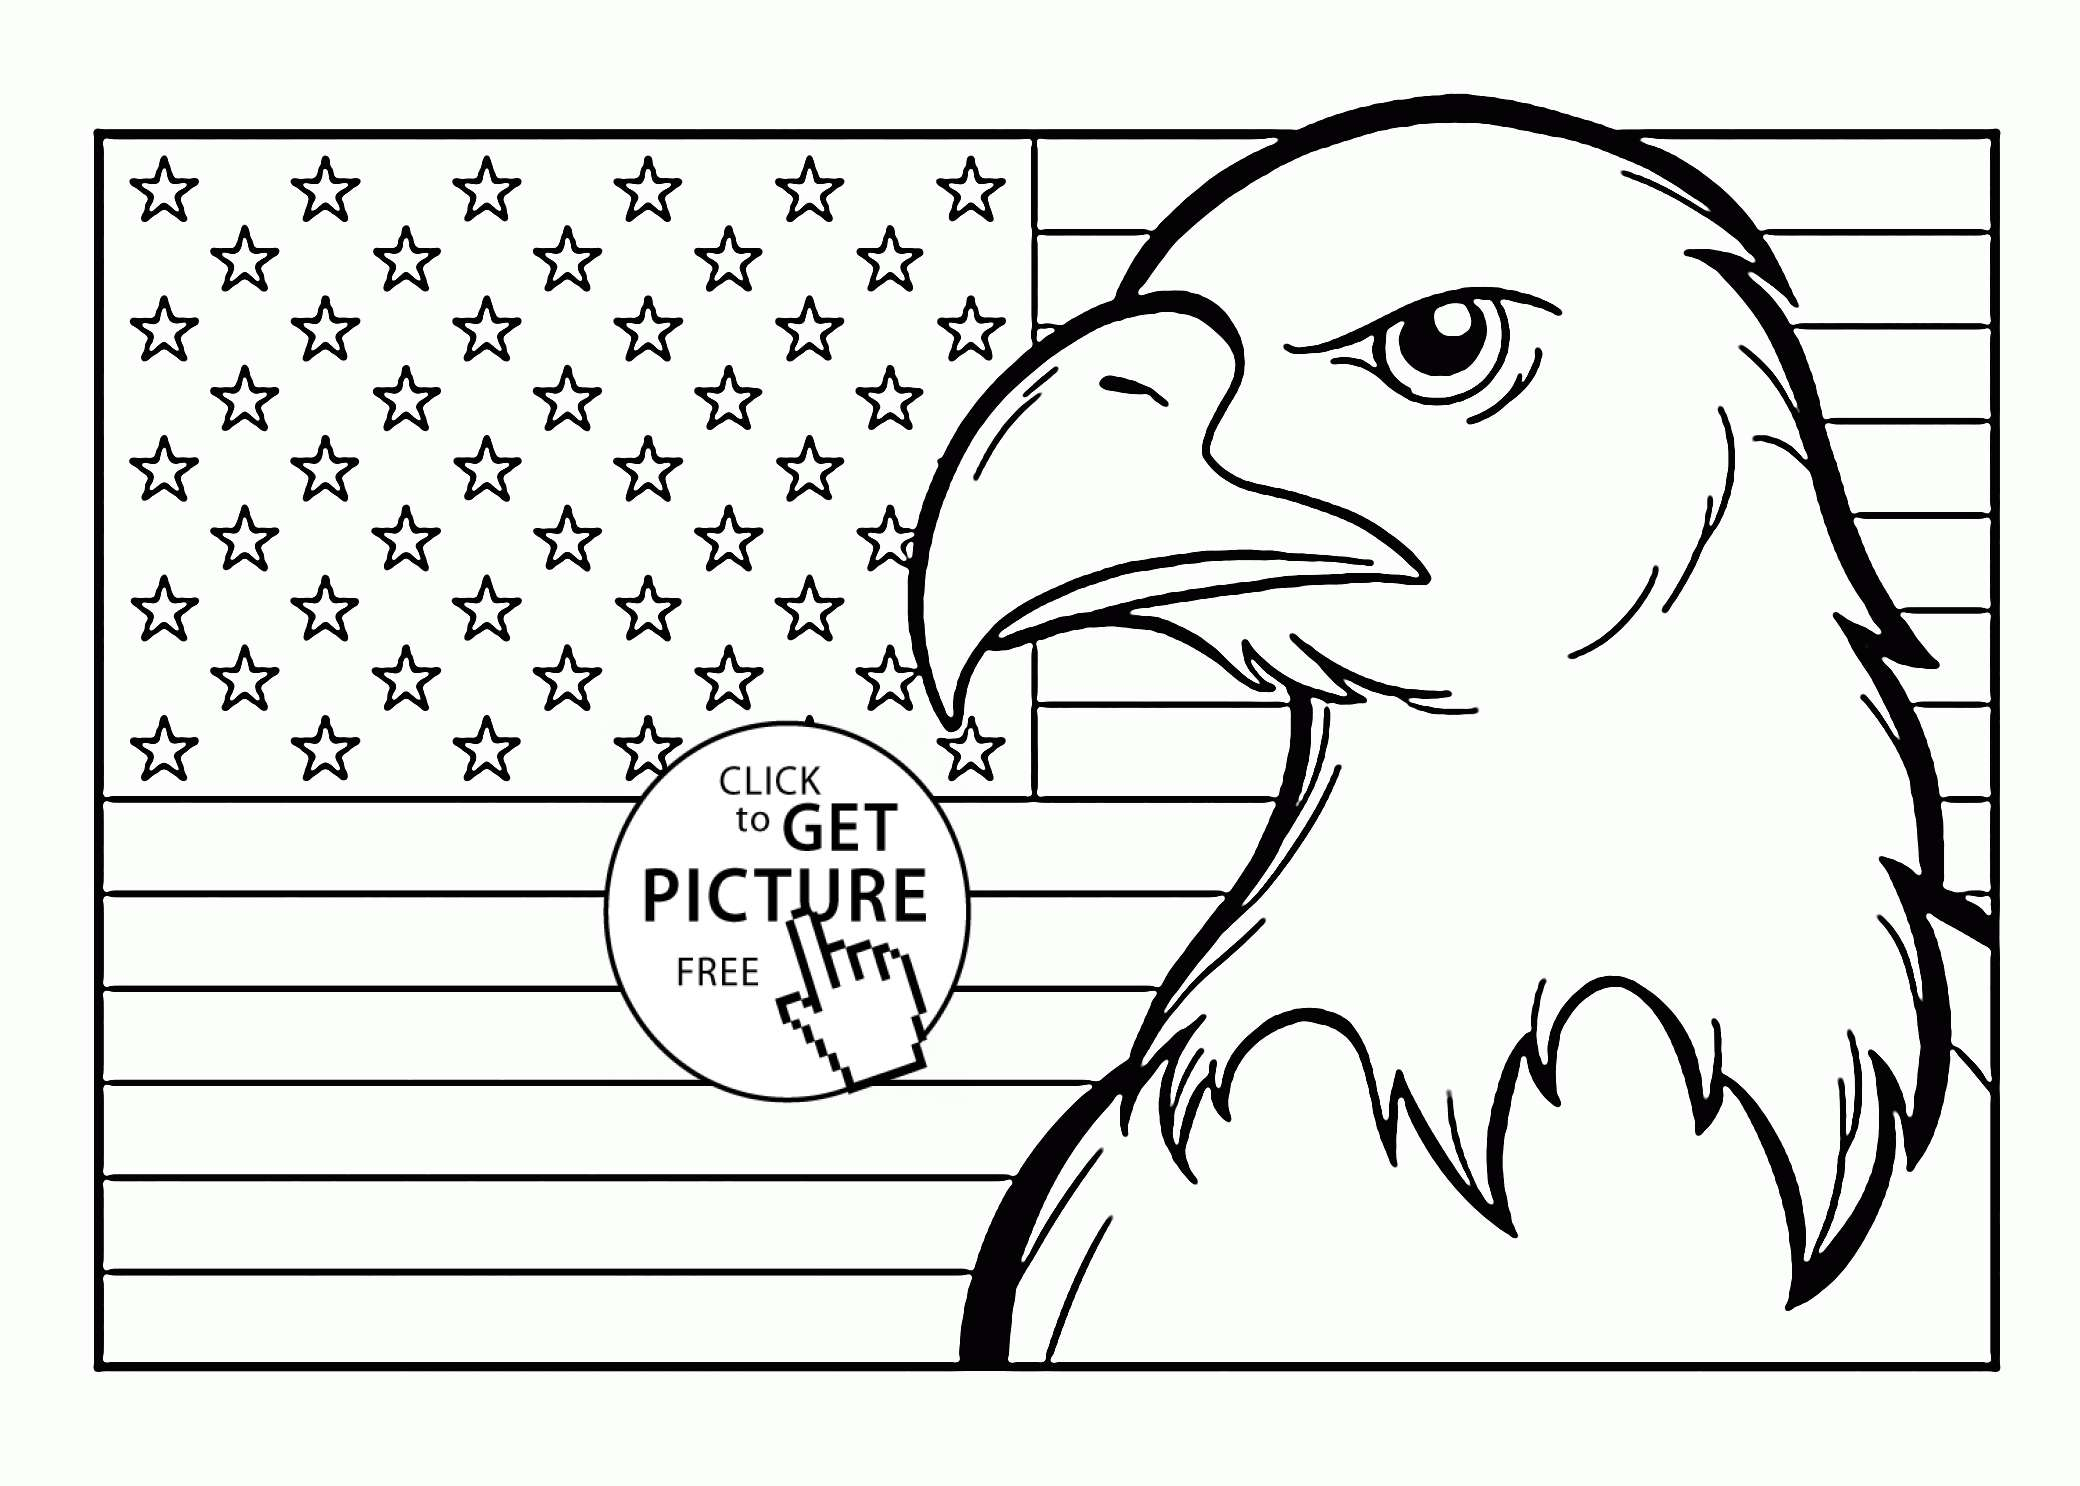 patriotic printable coloring pages Collection-Eagle Printable Coloring Pages Awesome American Flag Coloring Page for First Grade to Print 9-c